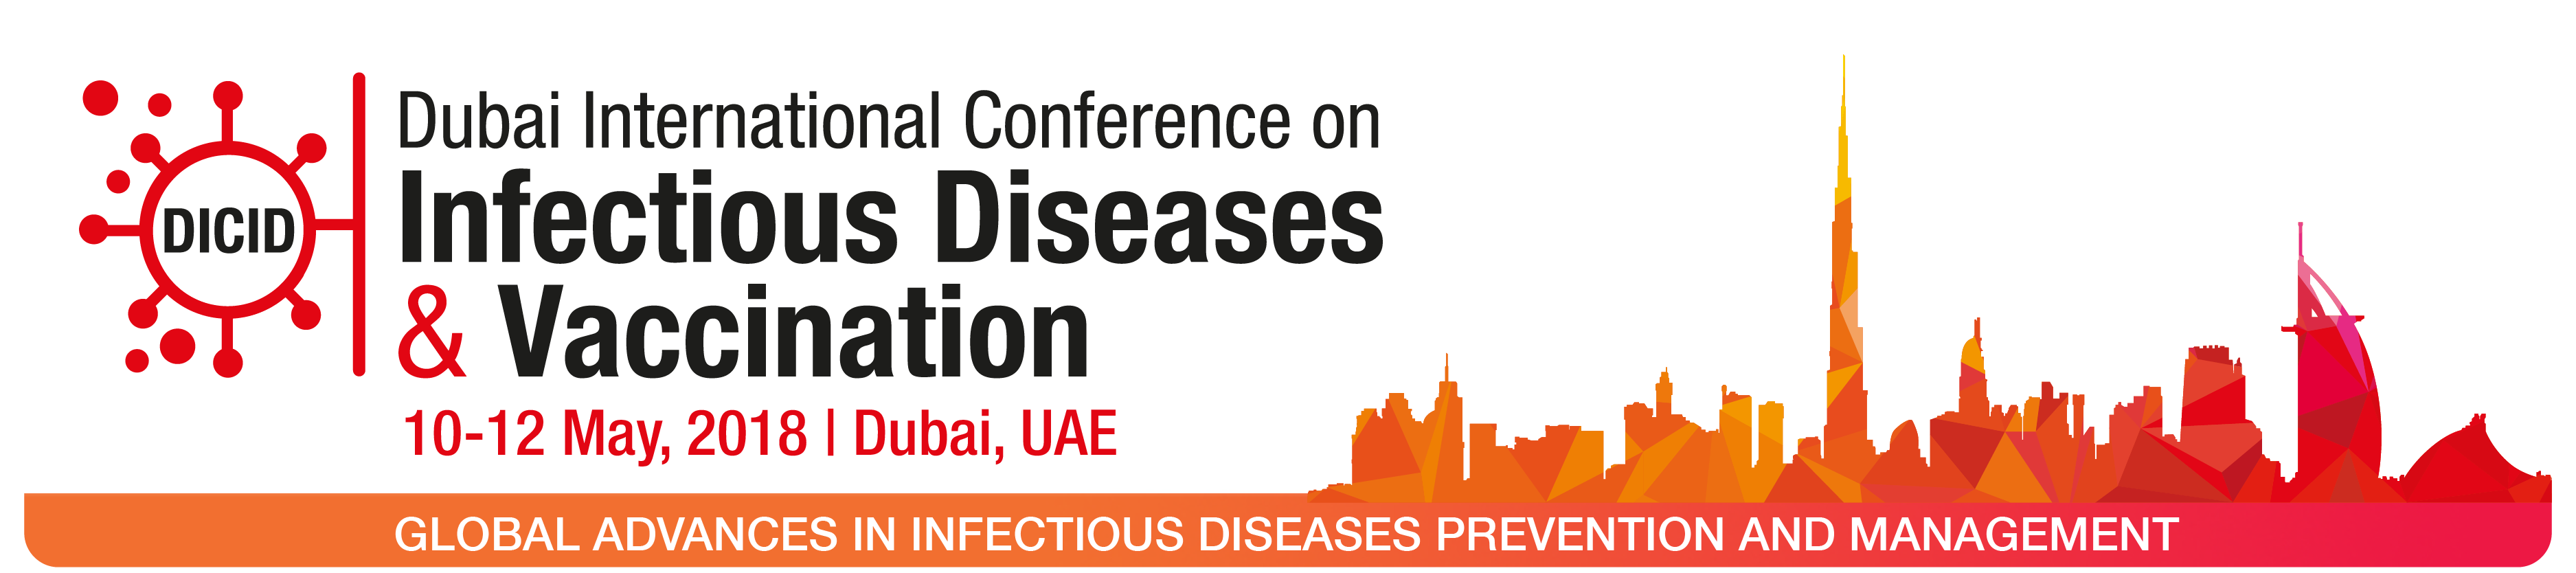 3rd Annual Dubai International Conference on Infectious Diseases and Vaccination 2018